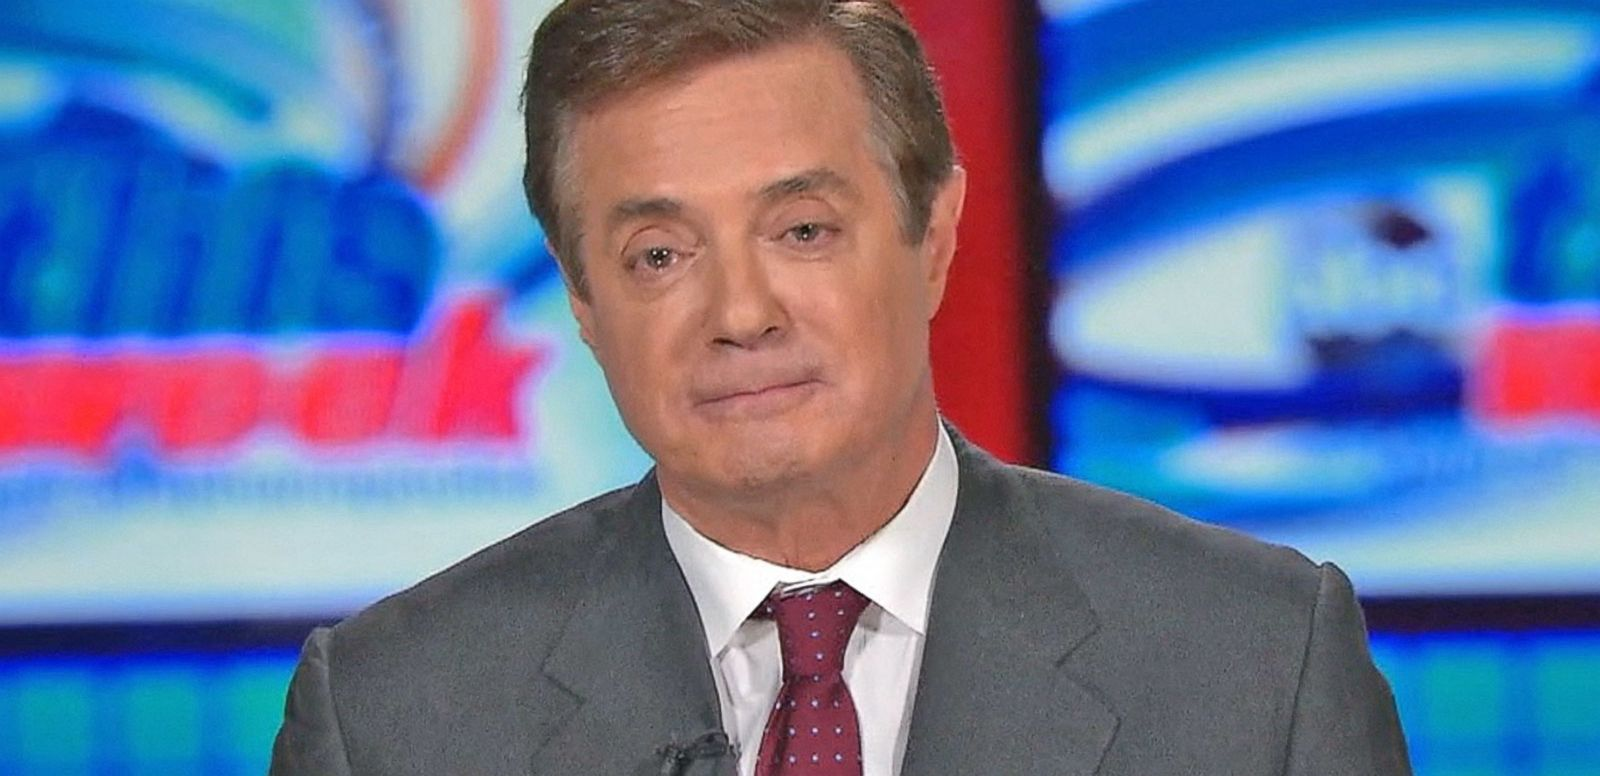 VIDEO: Paul Manafort on the Republican National Convention and Upcoming Democratic National Convention